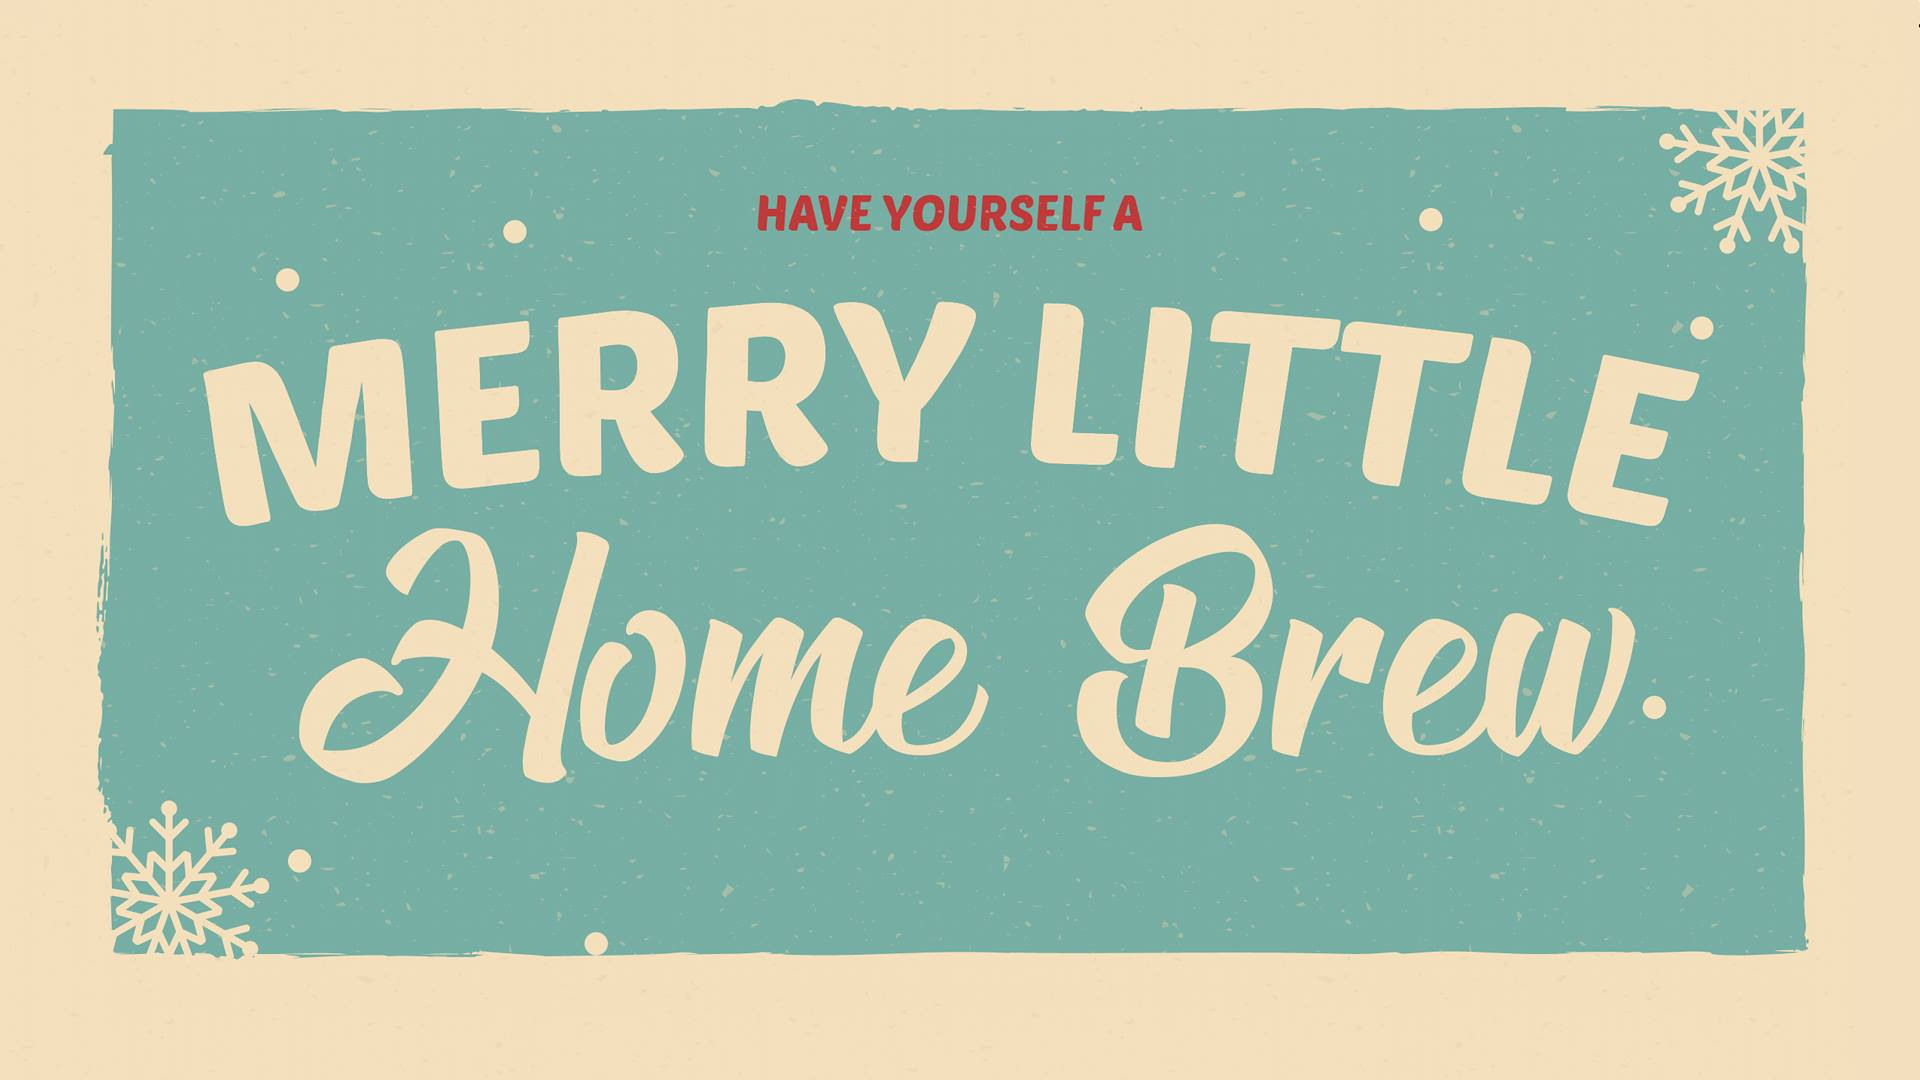 Have Yourself a Merry Little Home Brew